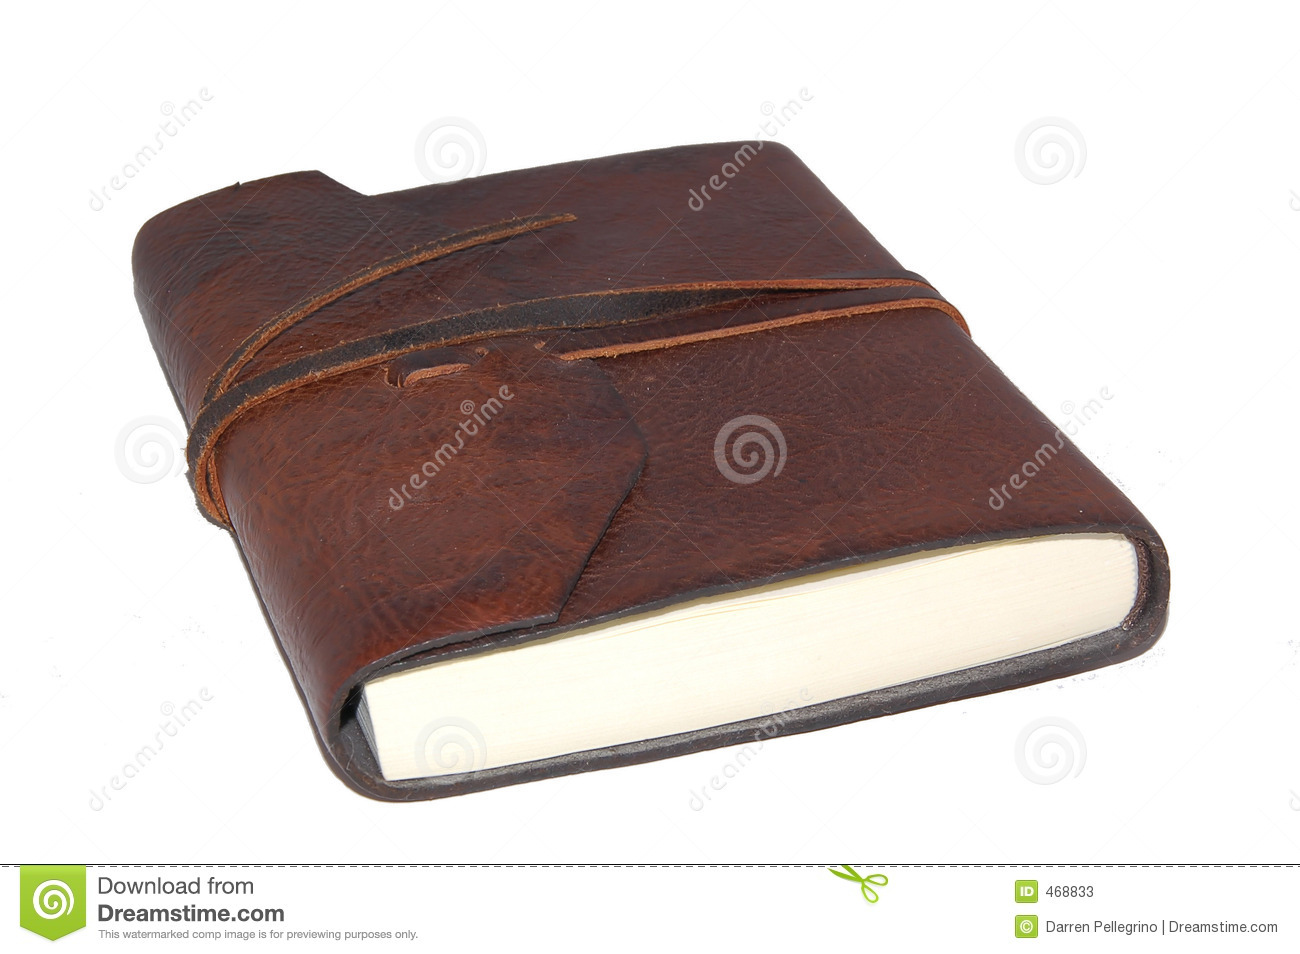 Leather Notebook Stock Photos - Image: 468833